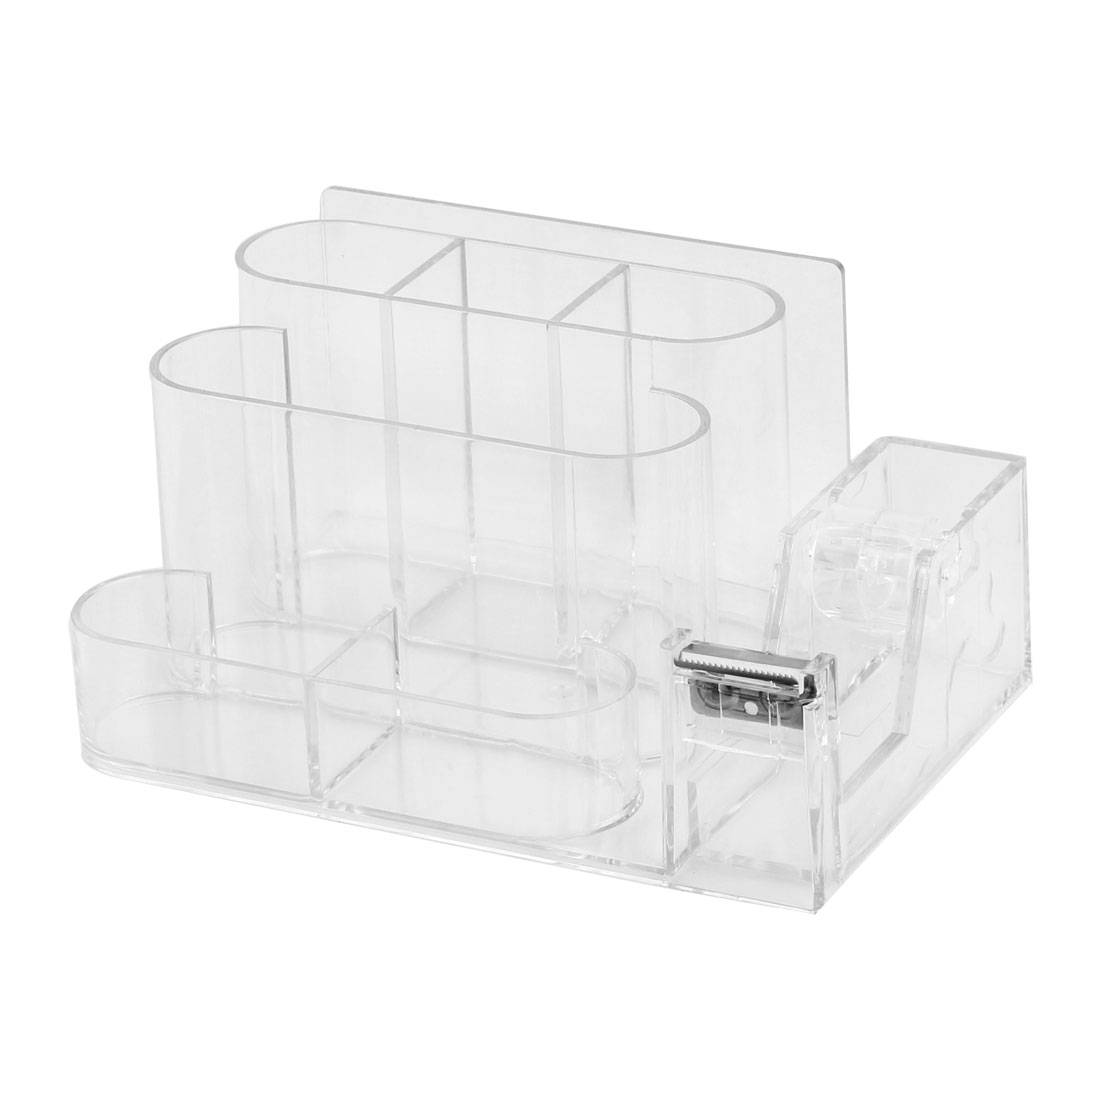 Home Office Plastic 6 Compartments One Tape Roller Pencil Pen Holder Clear